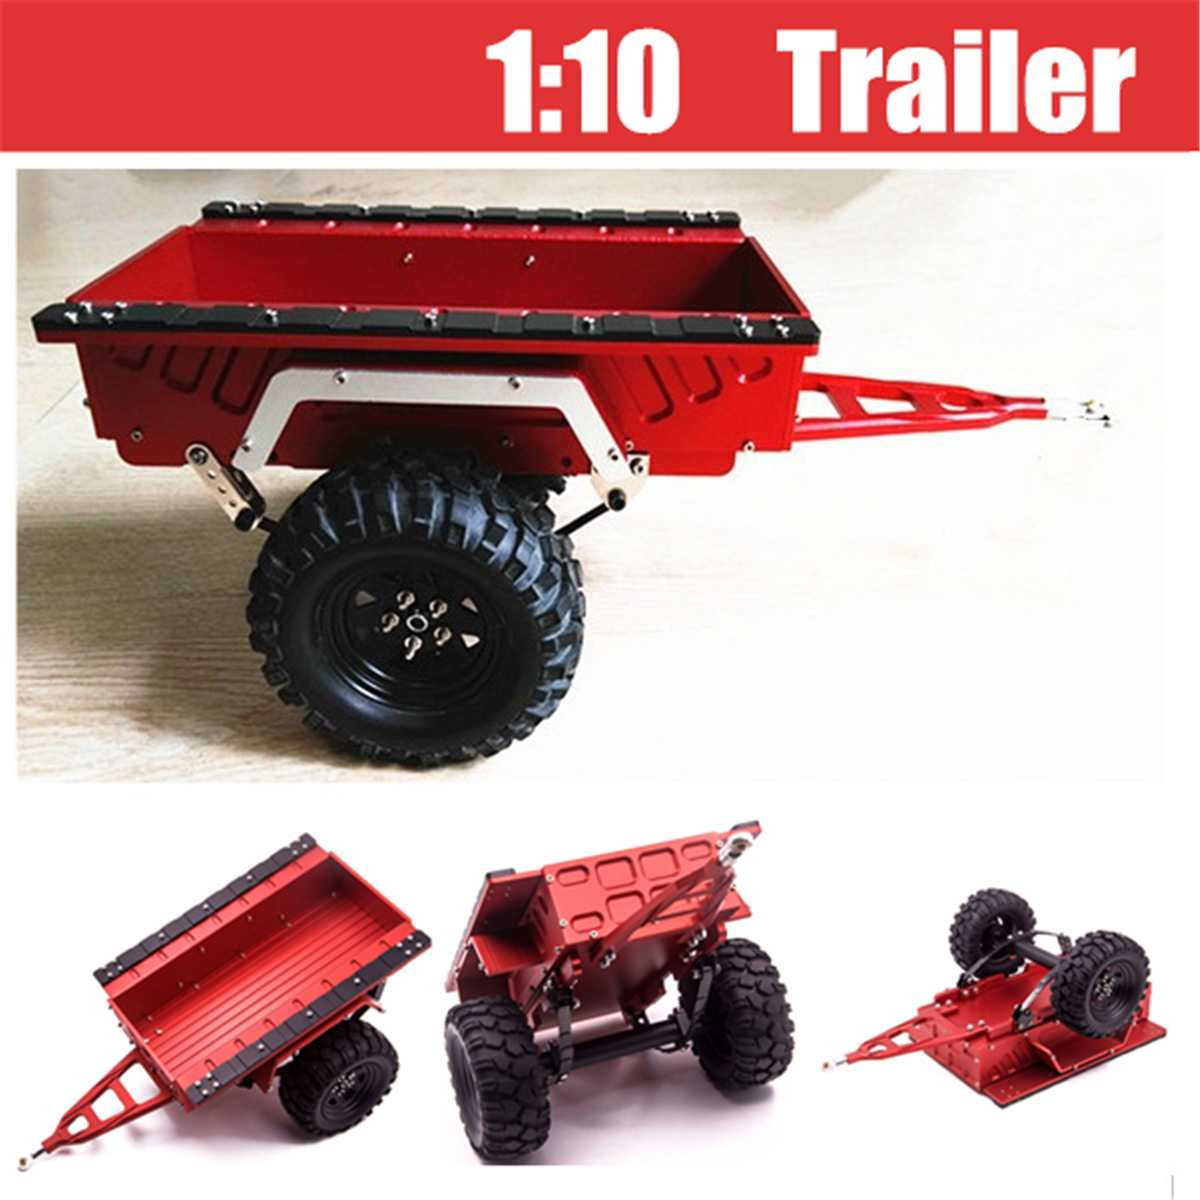 Aluminum 1:10 Scale Trailer Ties Diecast Toy Vehicle For TRX4 RC4WD D90 SCX10 Simulation Crawler Toy Children Kids Gifts